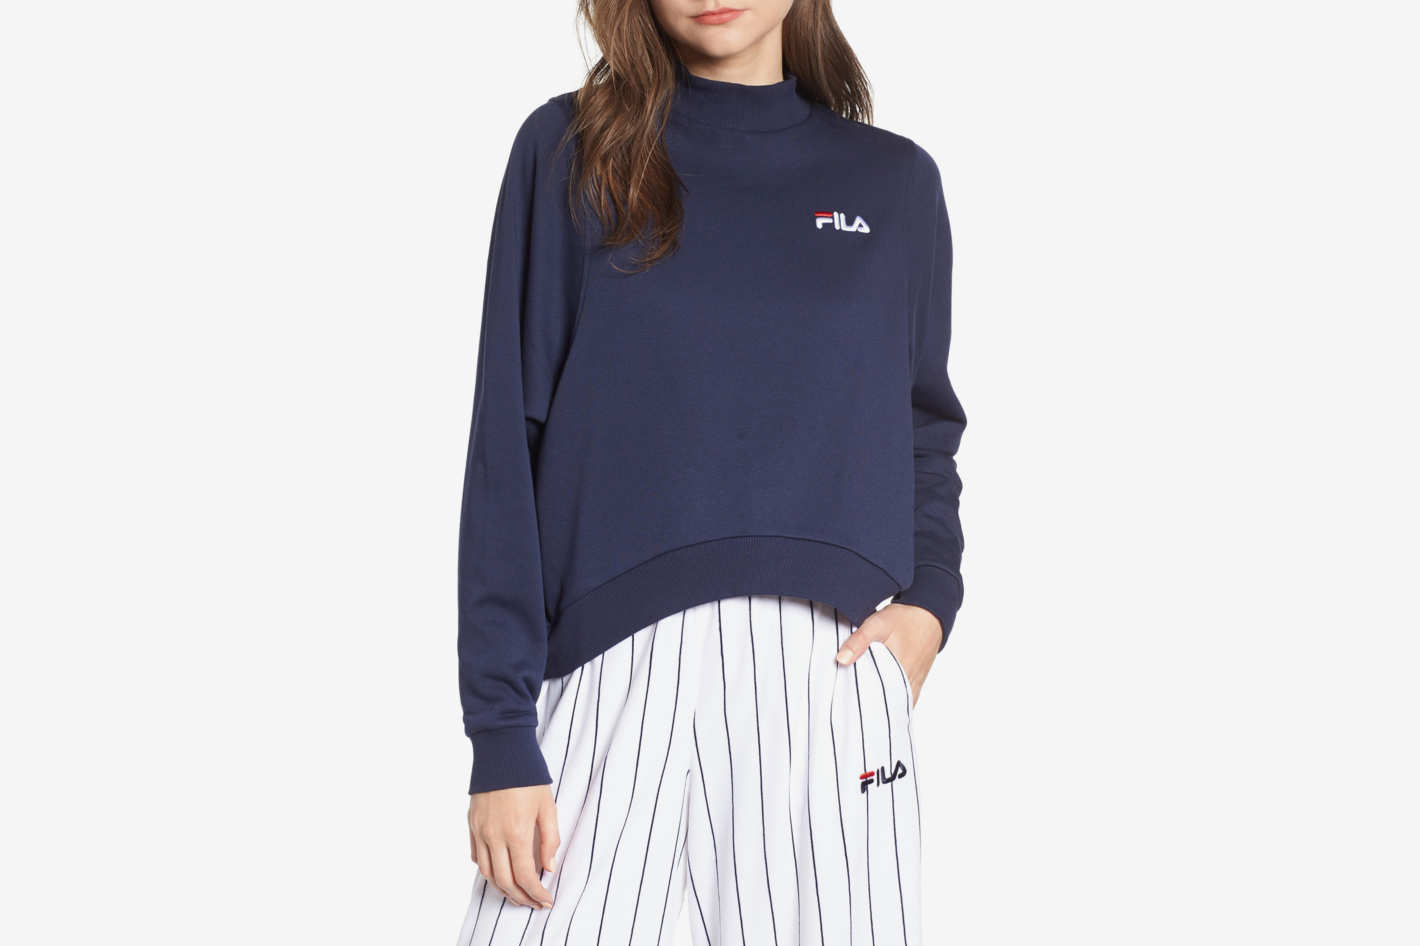 Fila Summer Mock Neck Sweatshirt